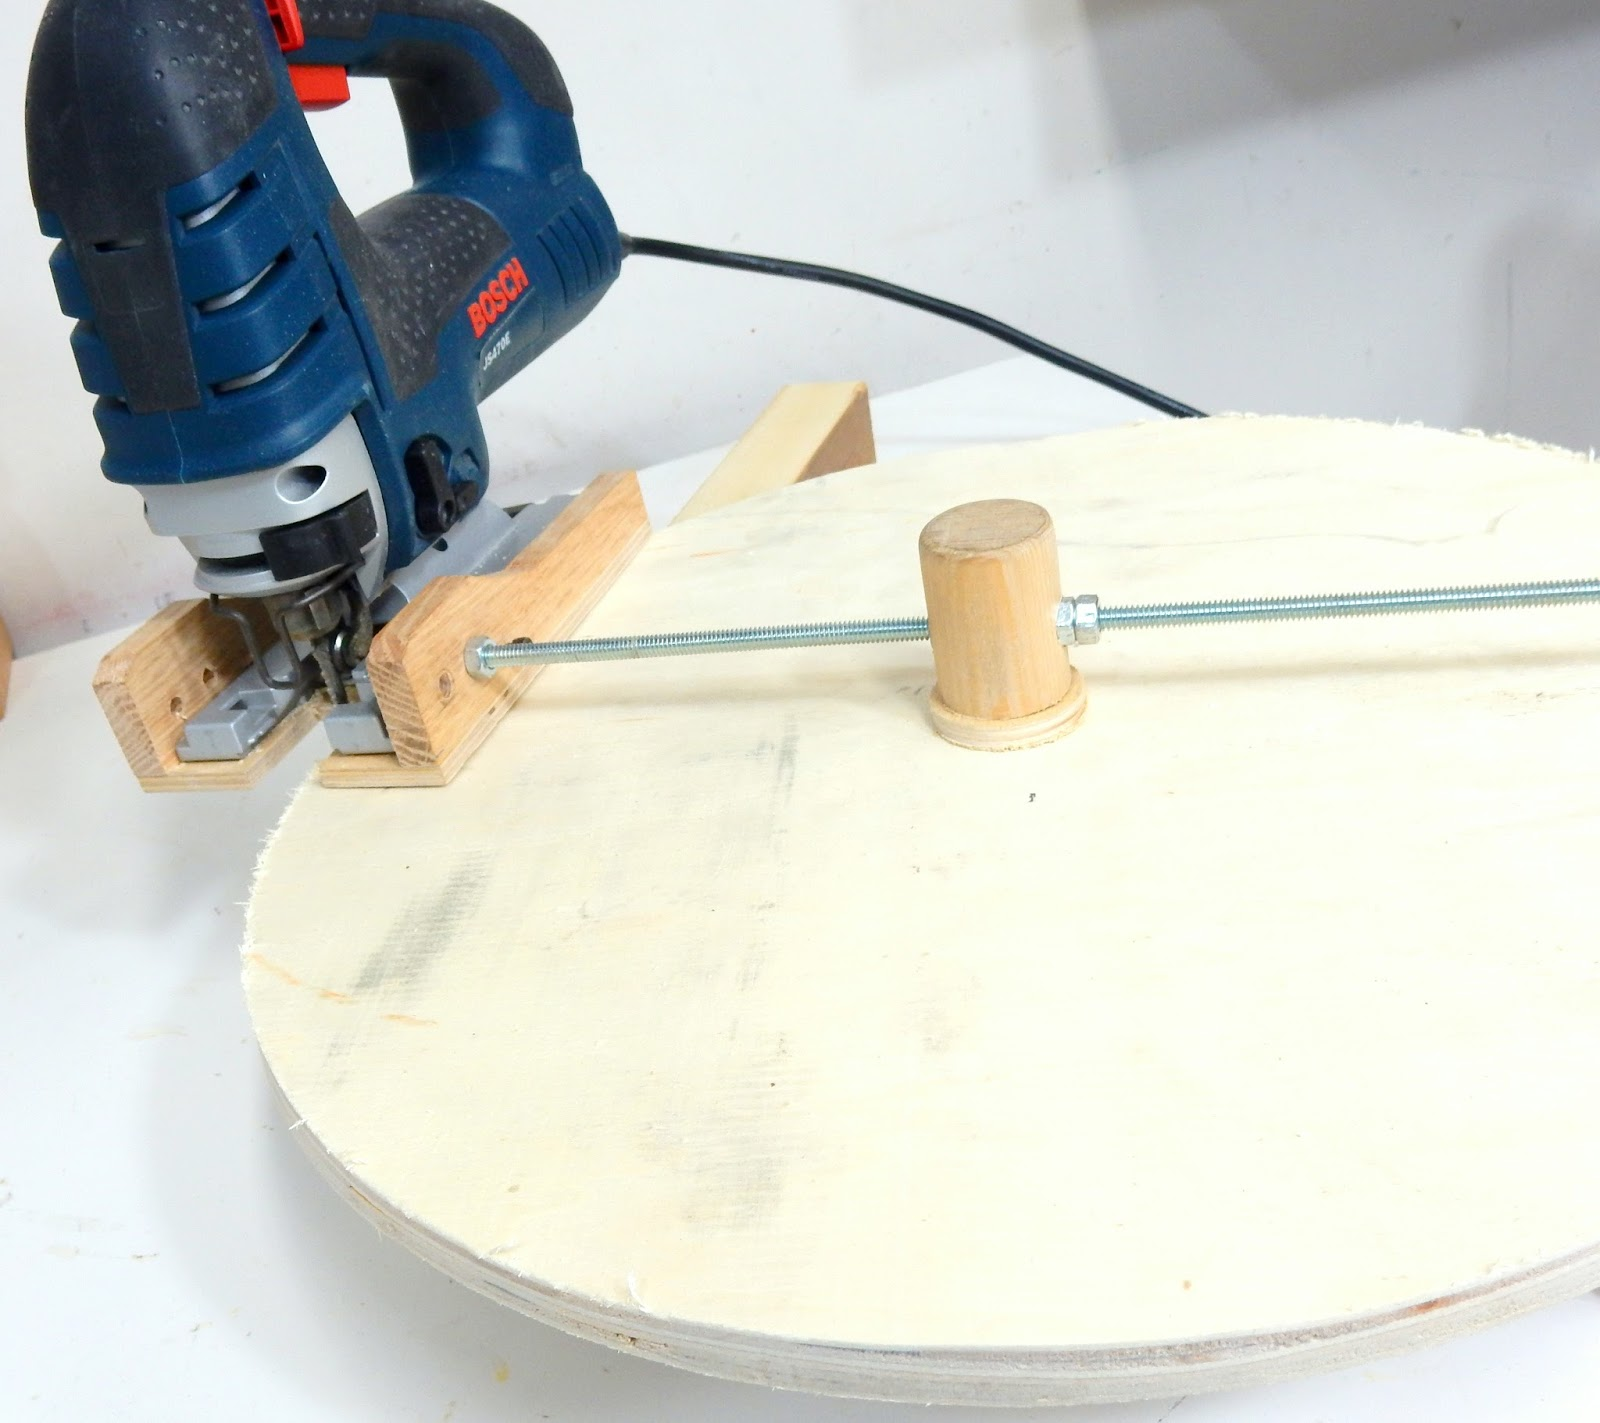 How To Cut Wood Circles? Most Woodworkers Will Have To Cut Circles, Partial  Circles Or Arcs From Time To Time. Cutting Circles Can Be Done Many  Different ...